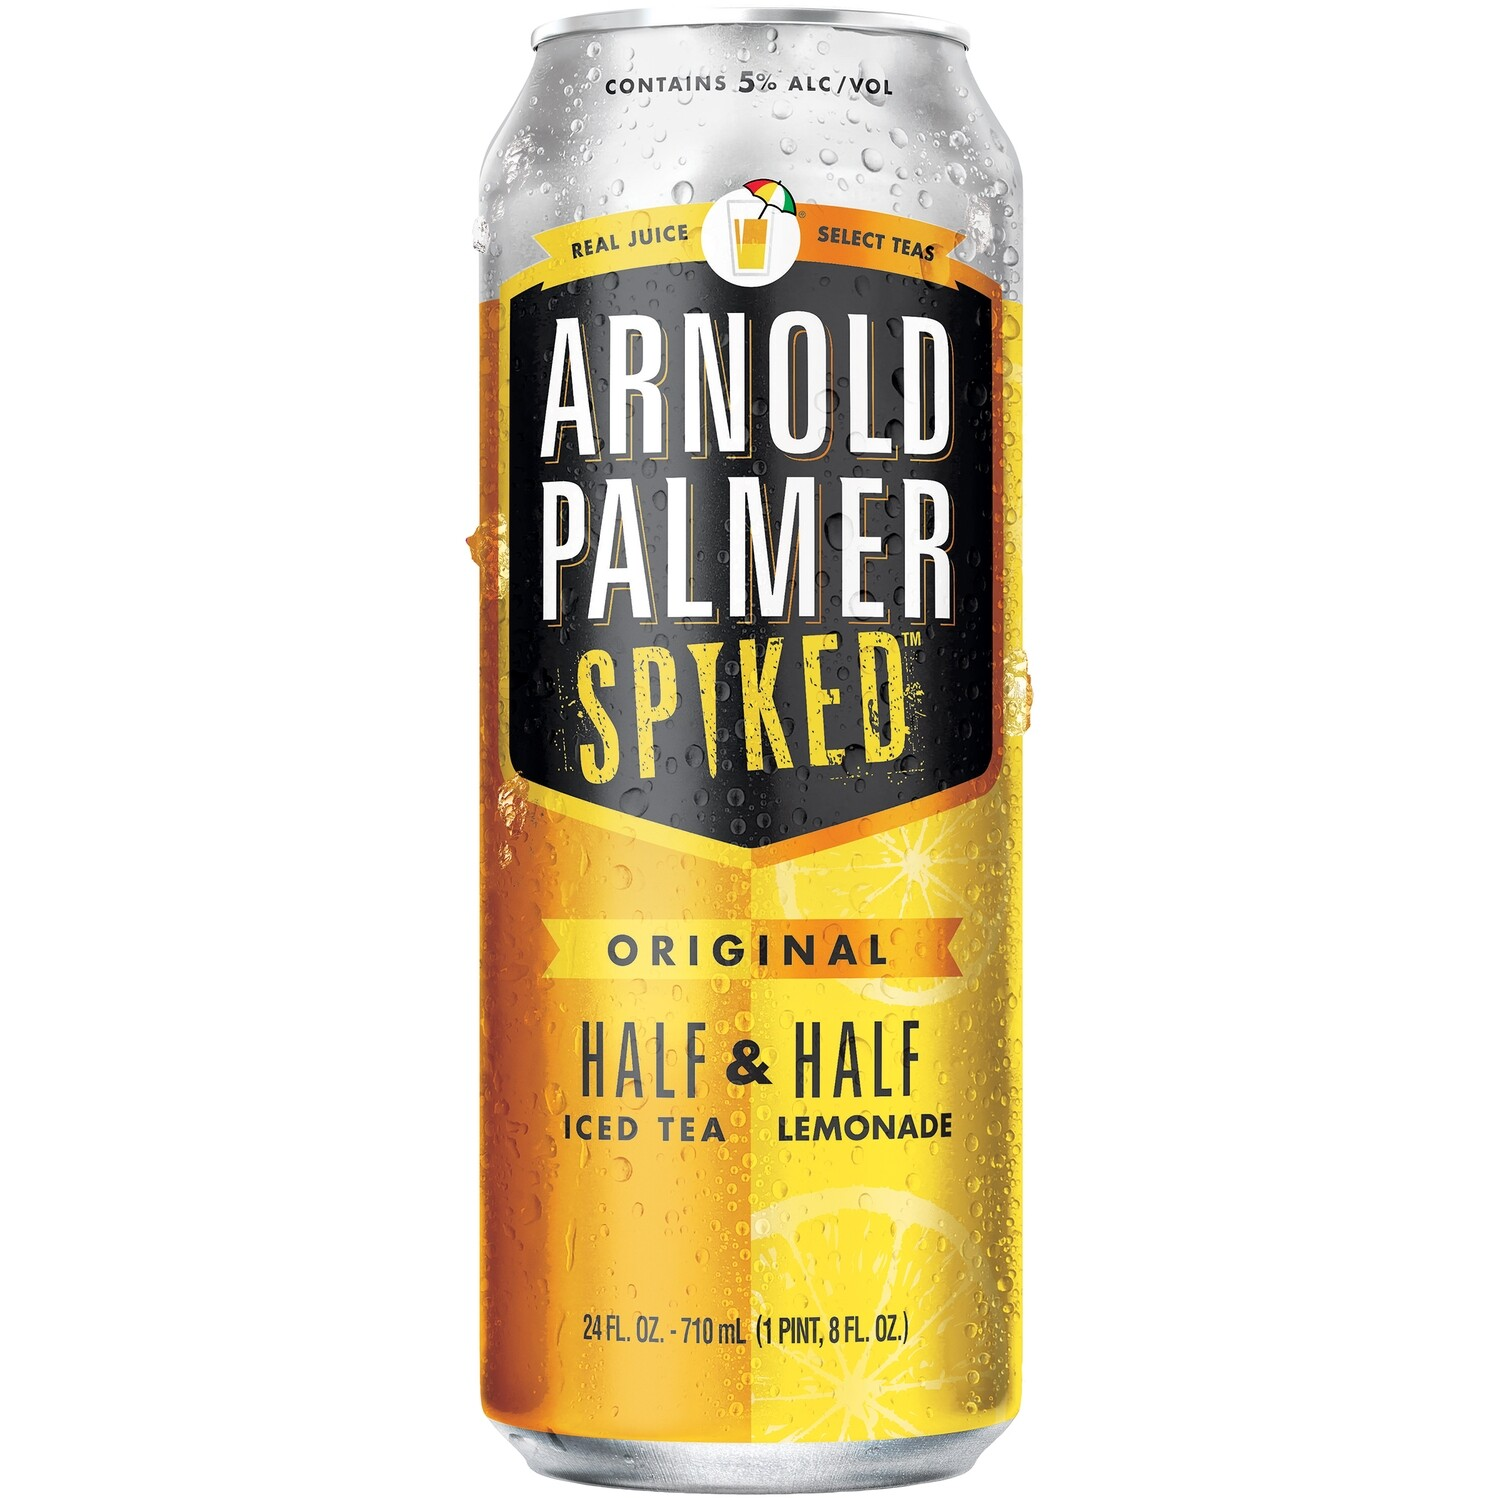 Arnold Palmer Spiked Half and Half 24oz can